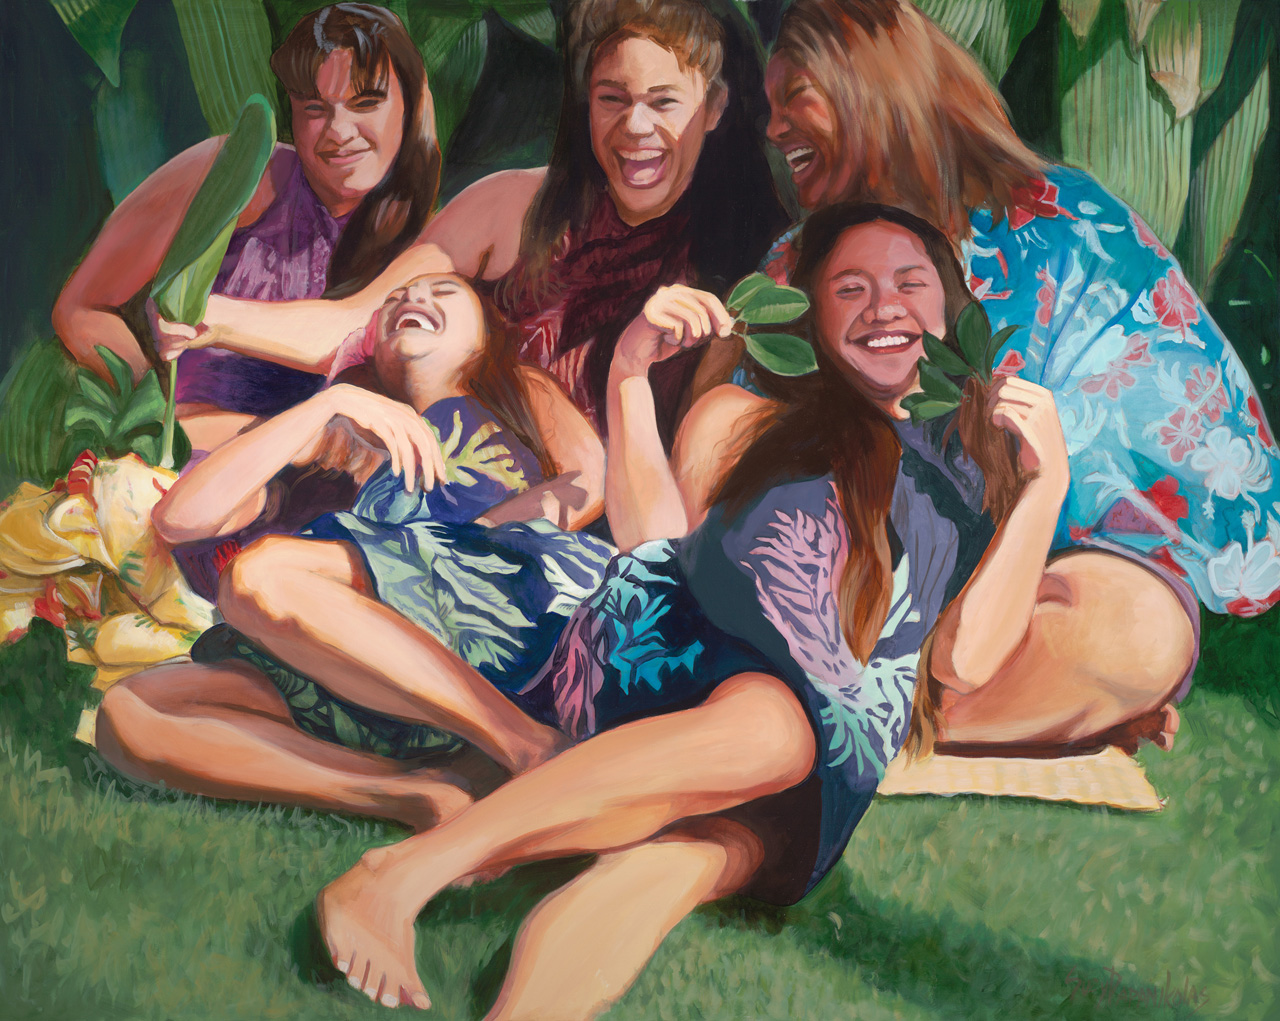 Five young girls sitting with one another and lauging